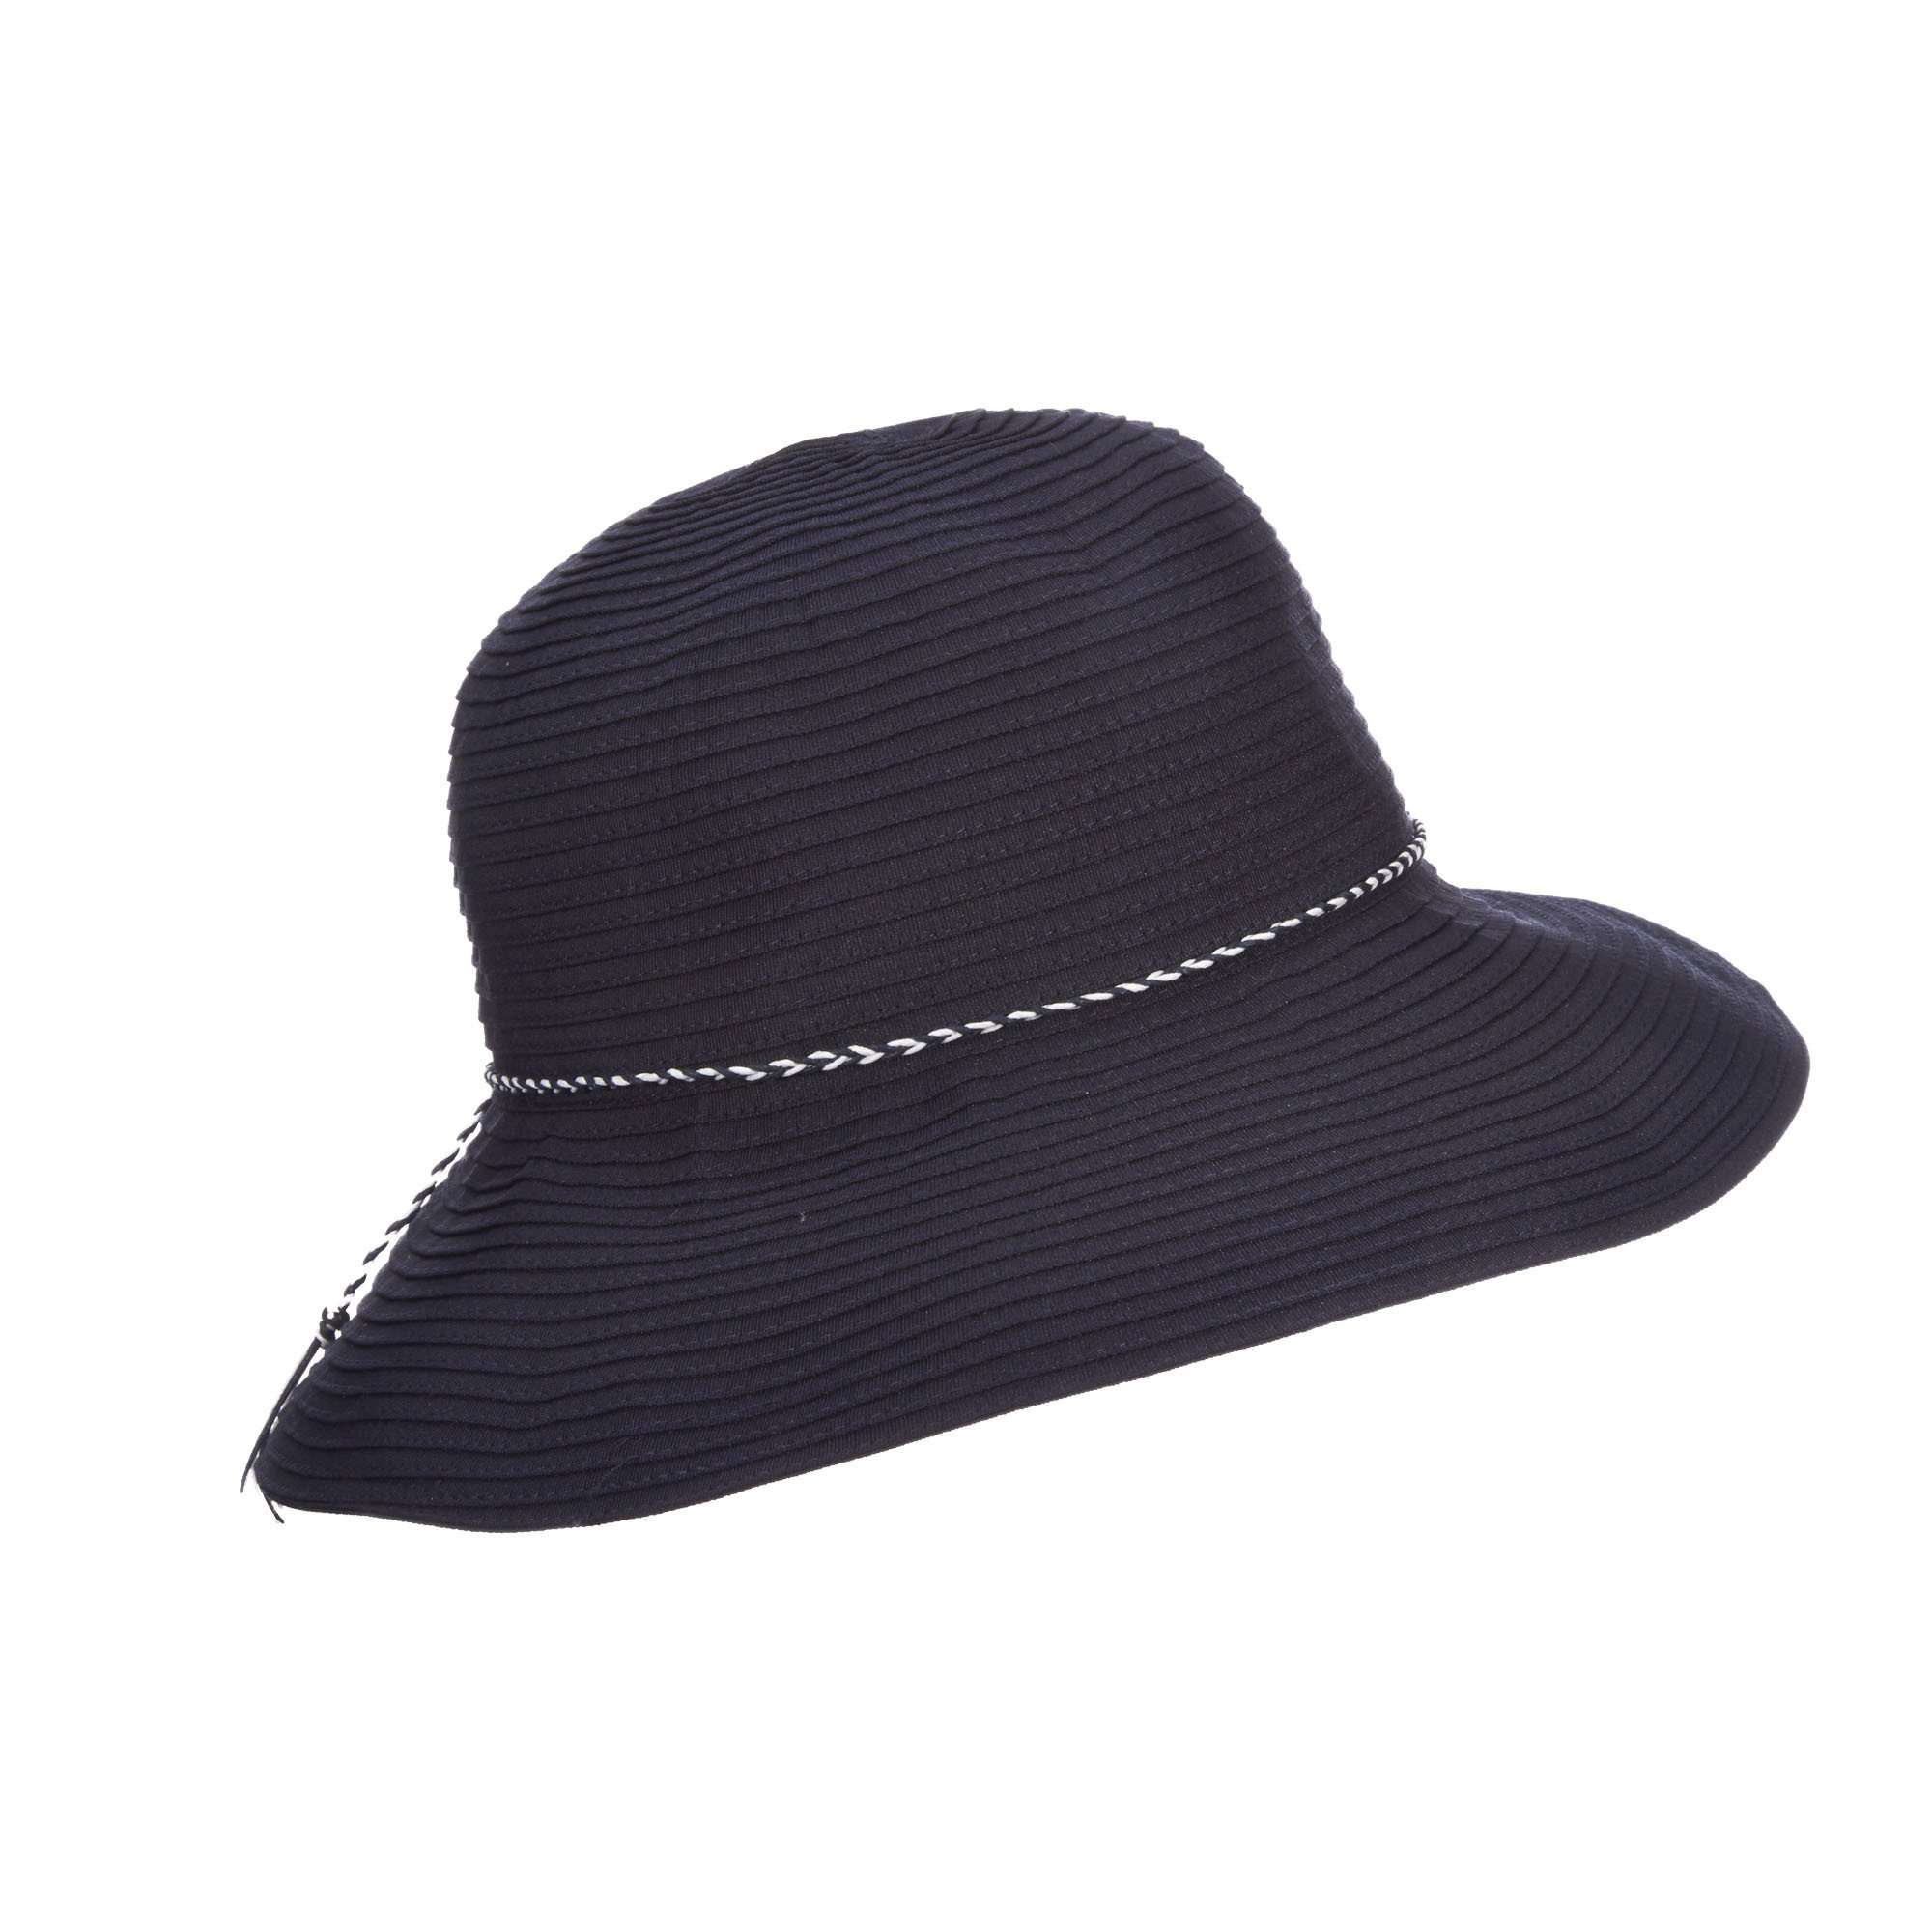 Scala Ribbon Bucket Hat - Shapeable Brim 95526fa137e